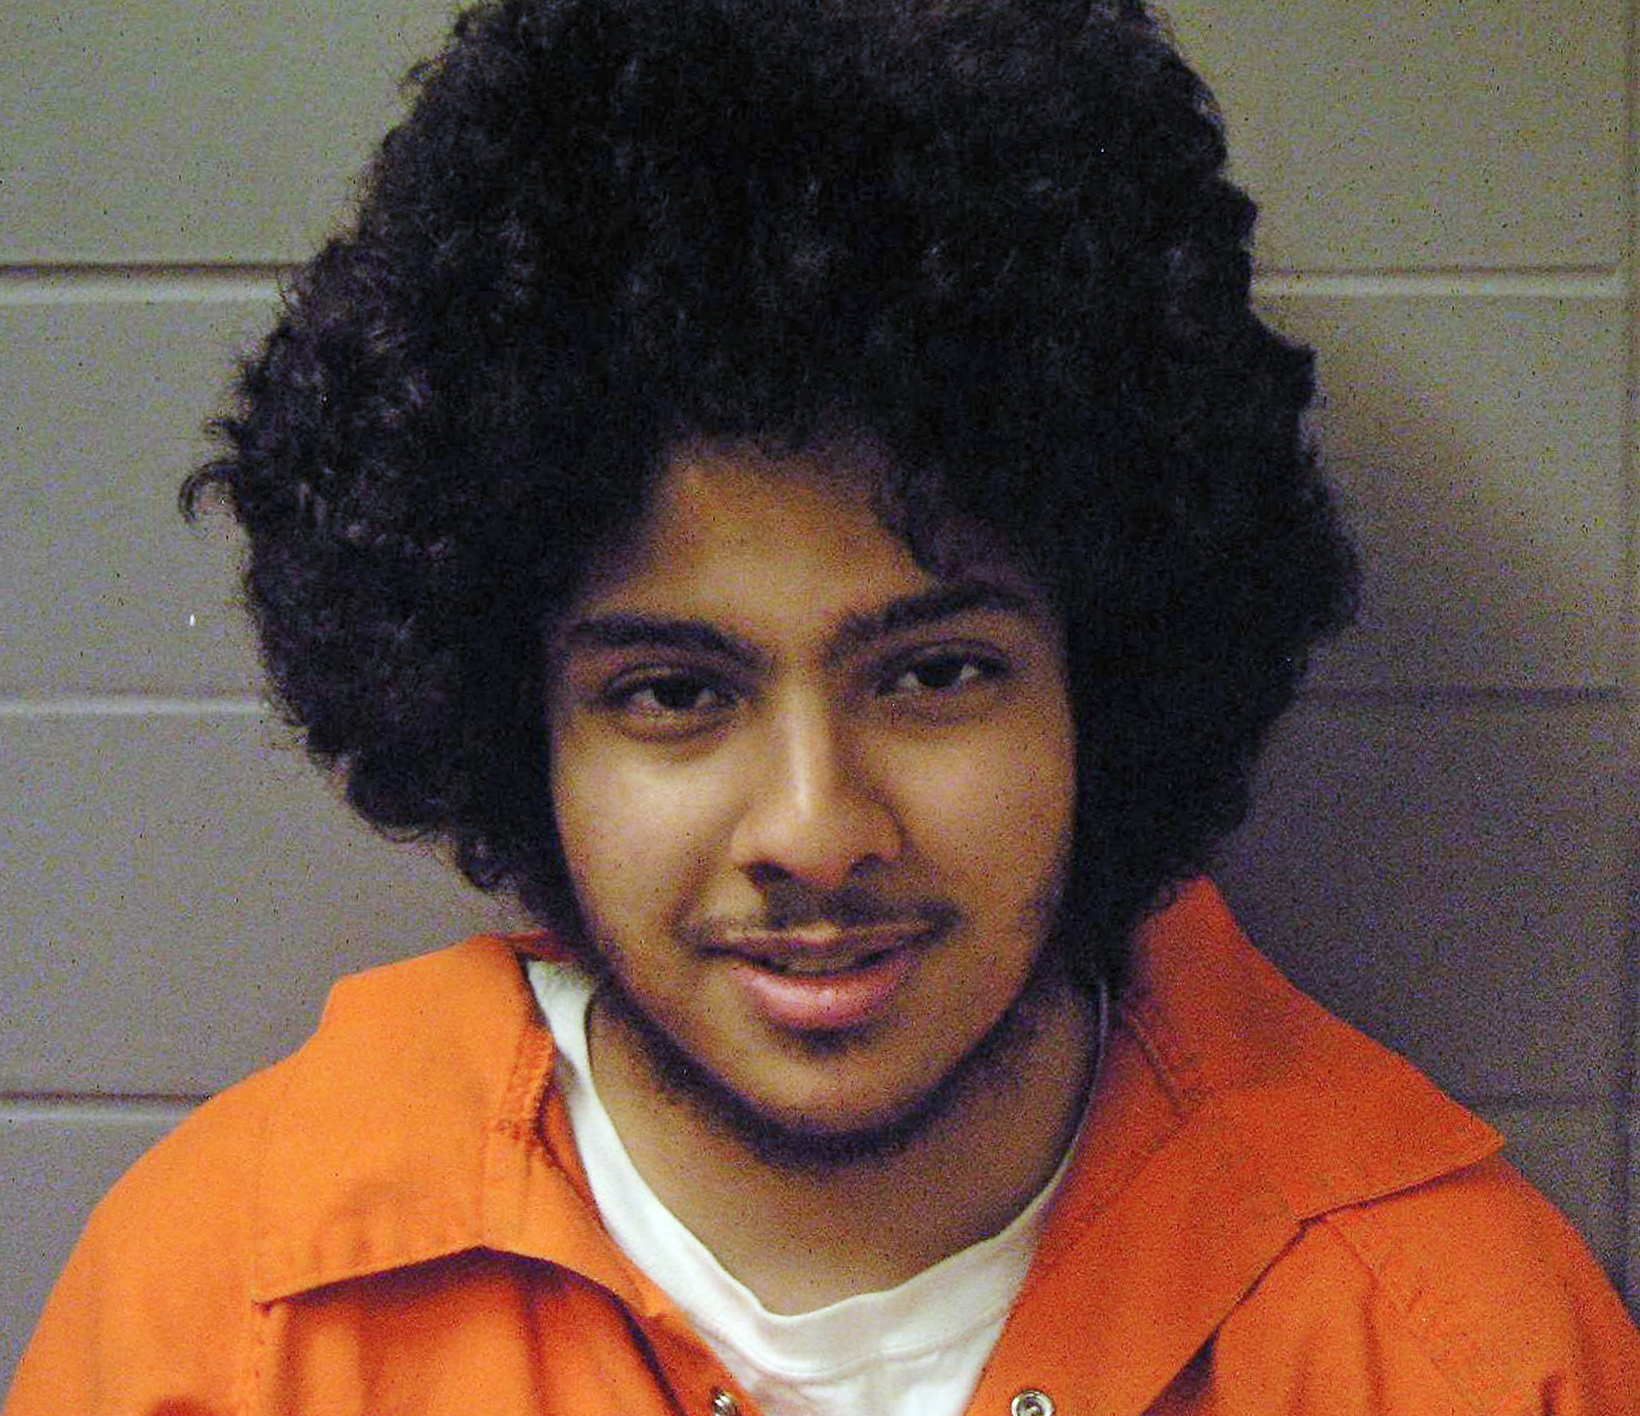 Man Convicted in Chicago Bomb Plot Apologizes at Sentencing